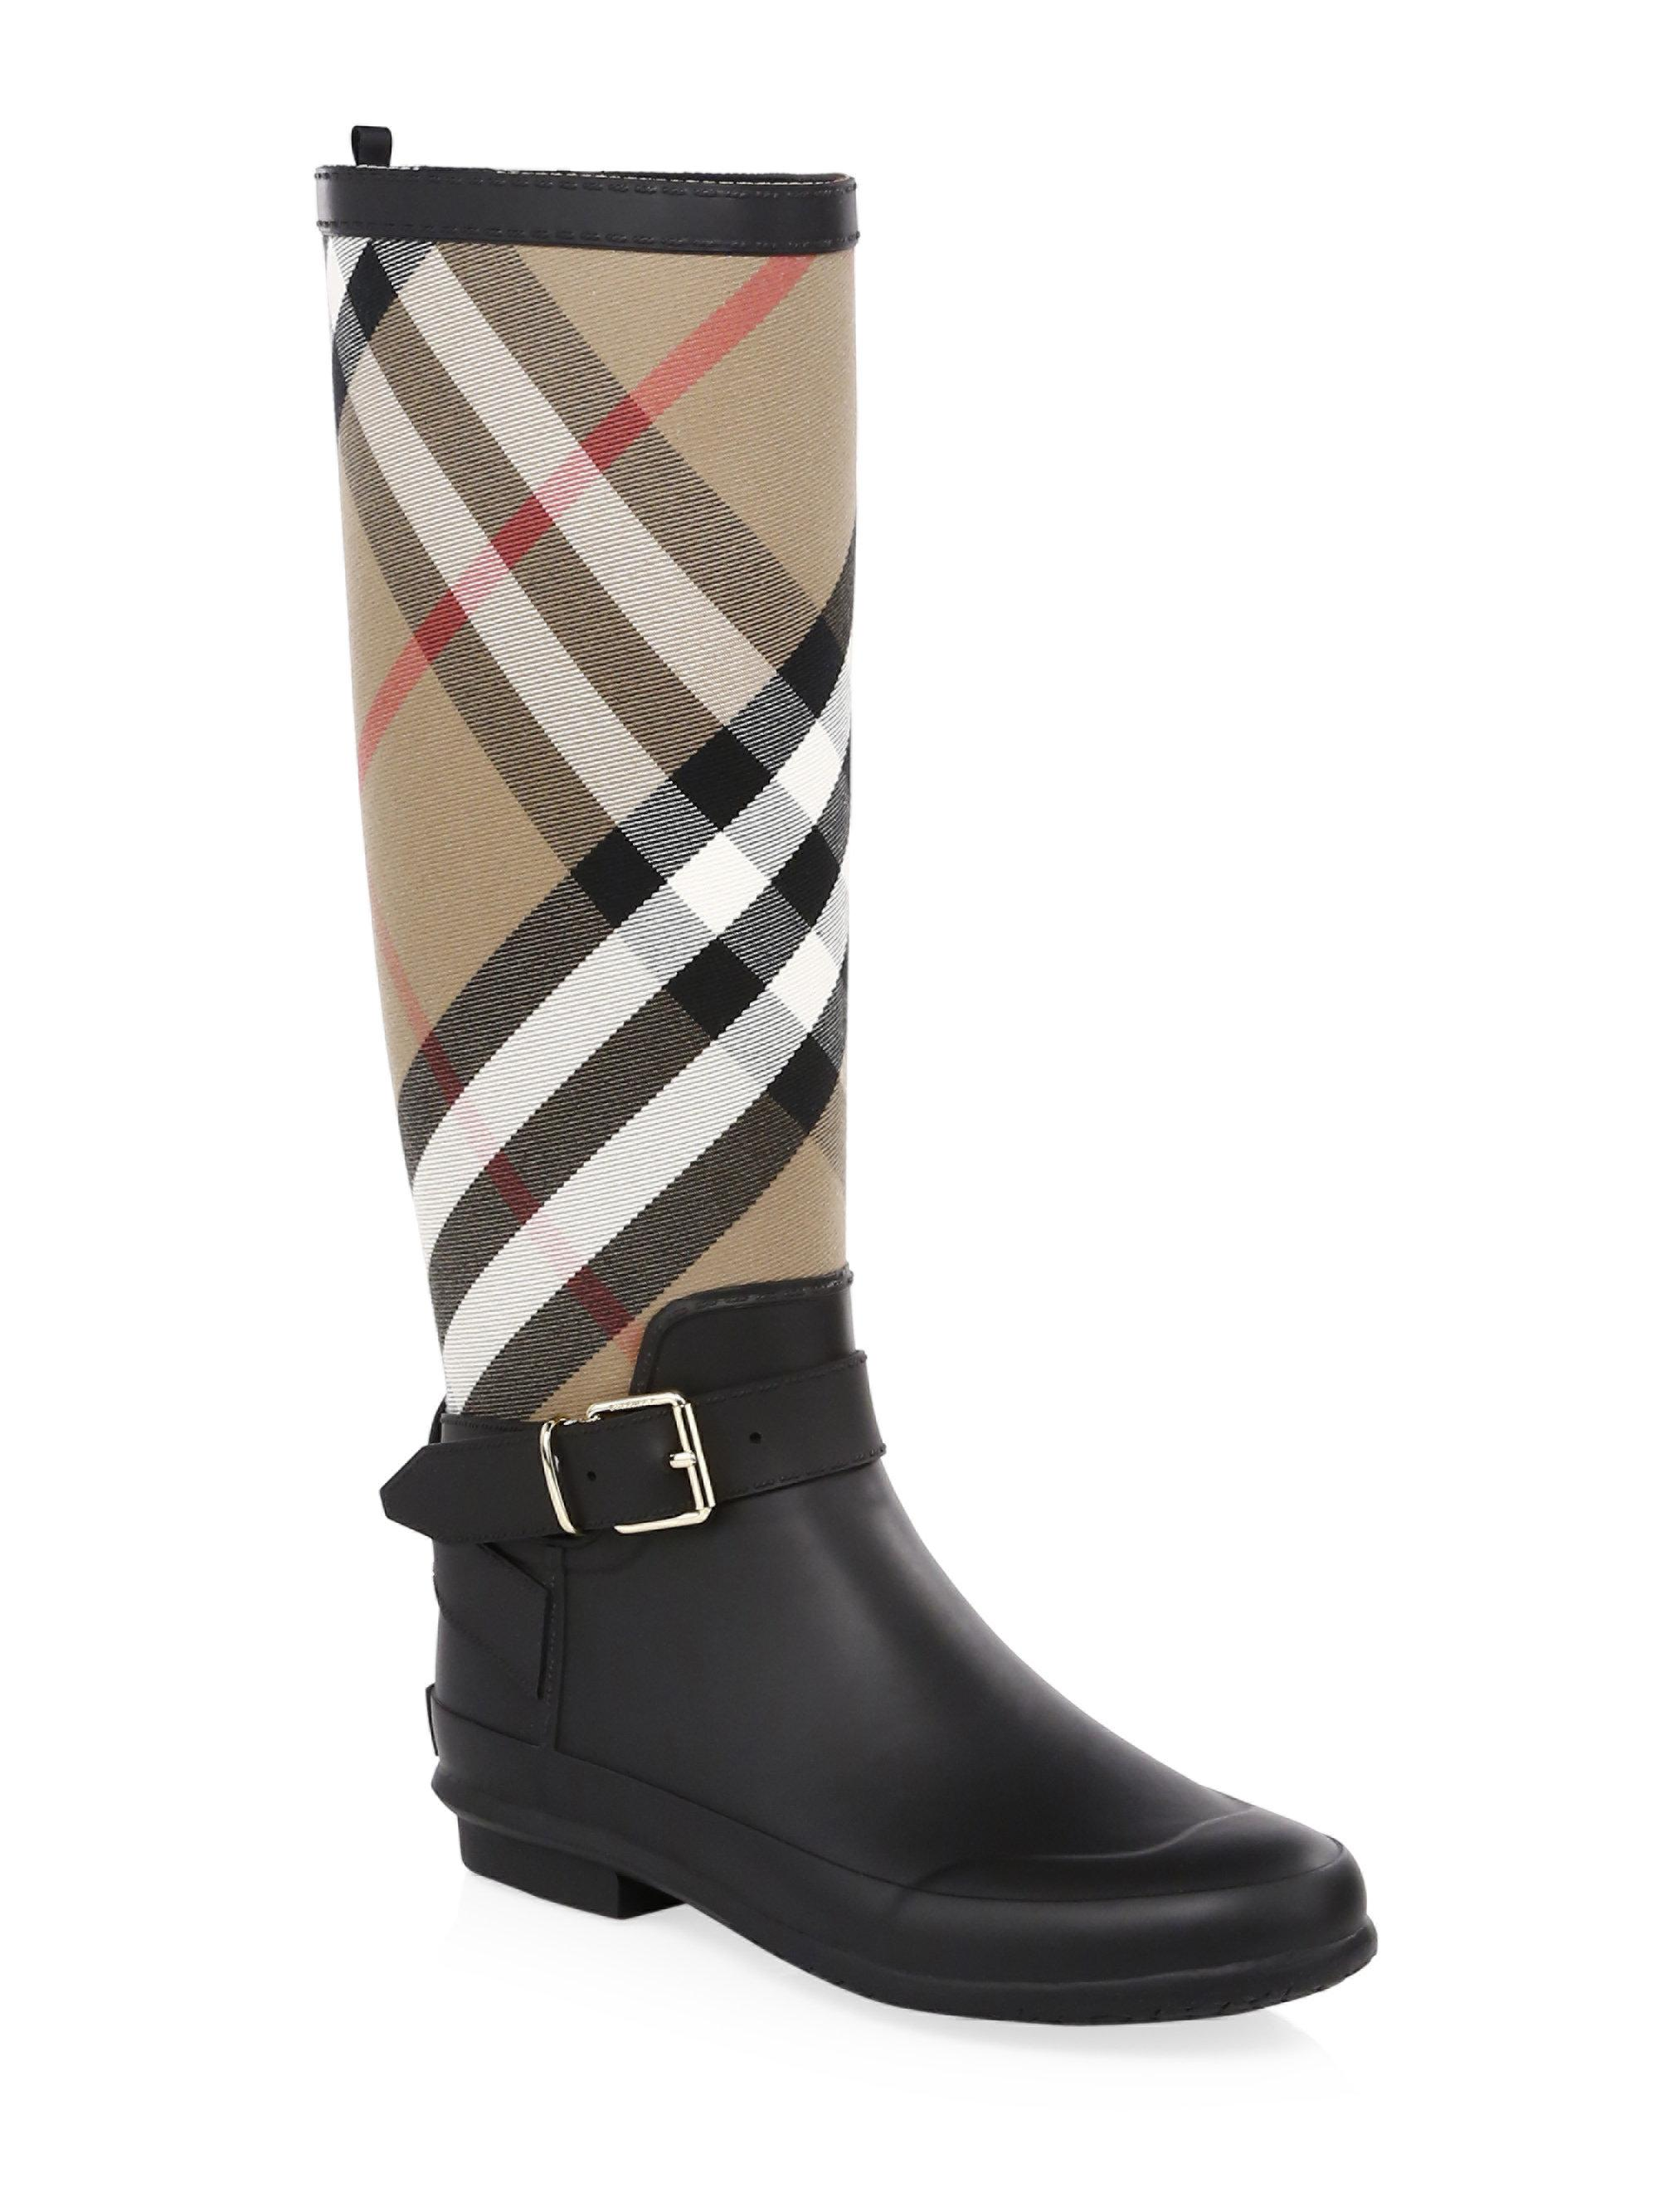 Burberry Simeon Knee-High Riding Boots XFZocS4CL